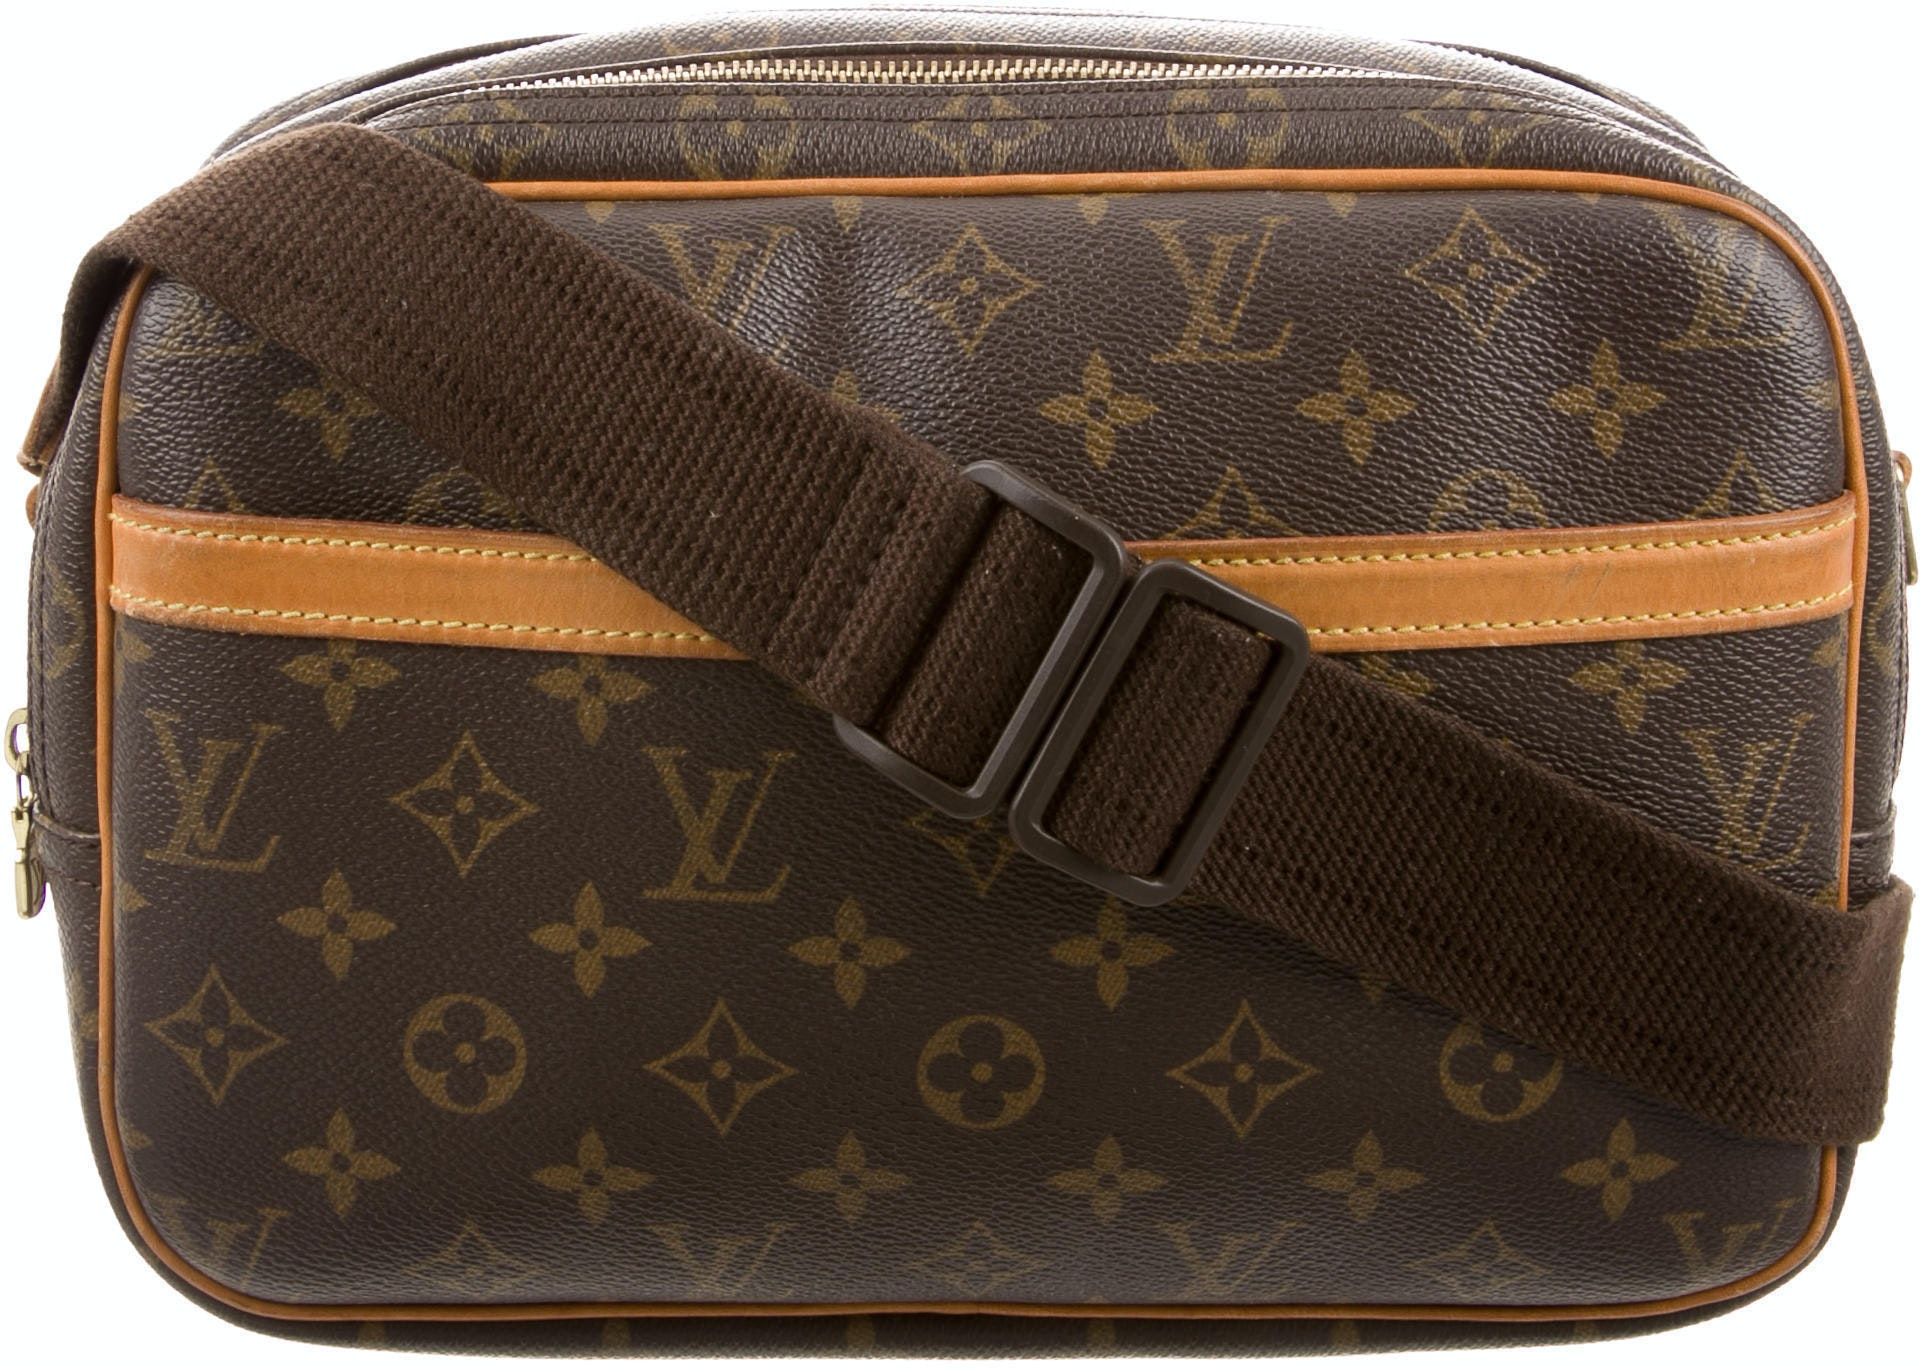 Louis Vuitton Reporter Monogram PM Brown